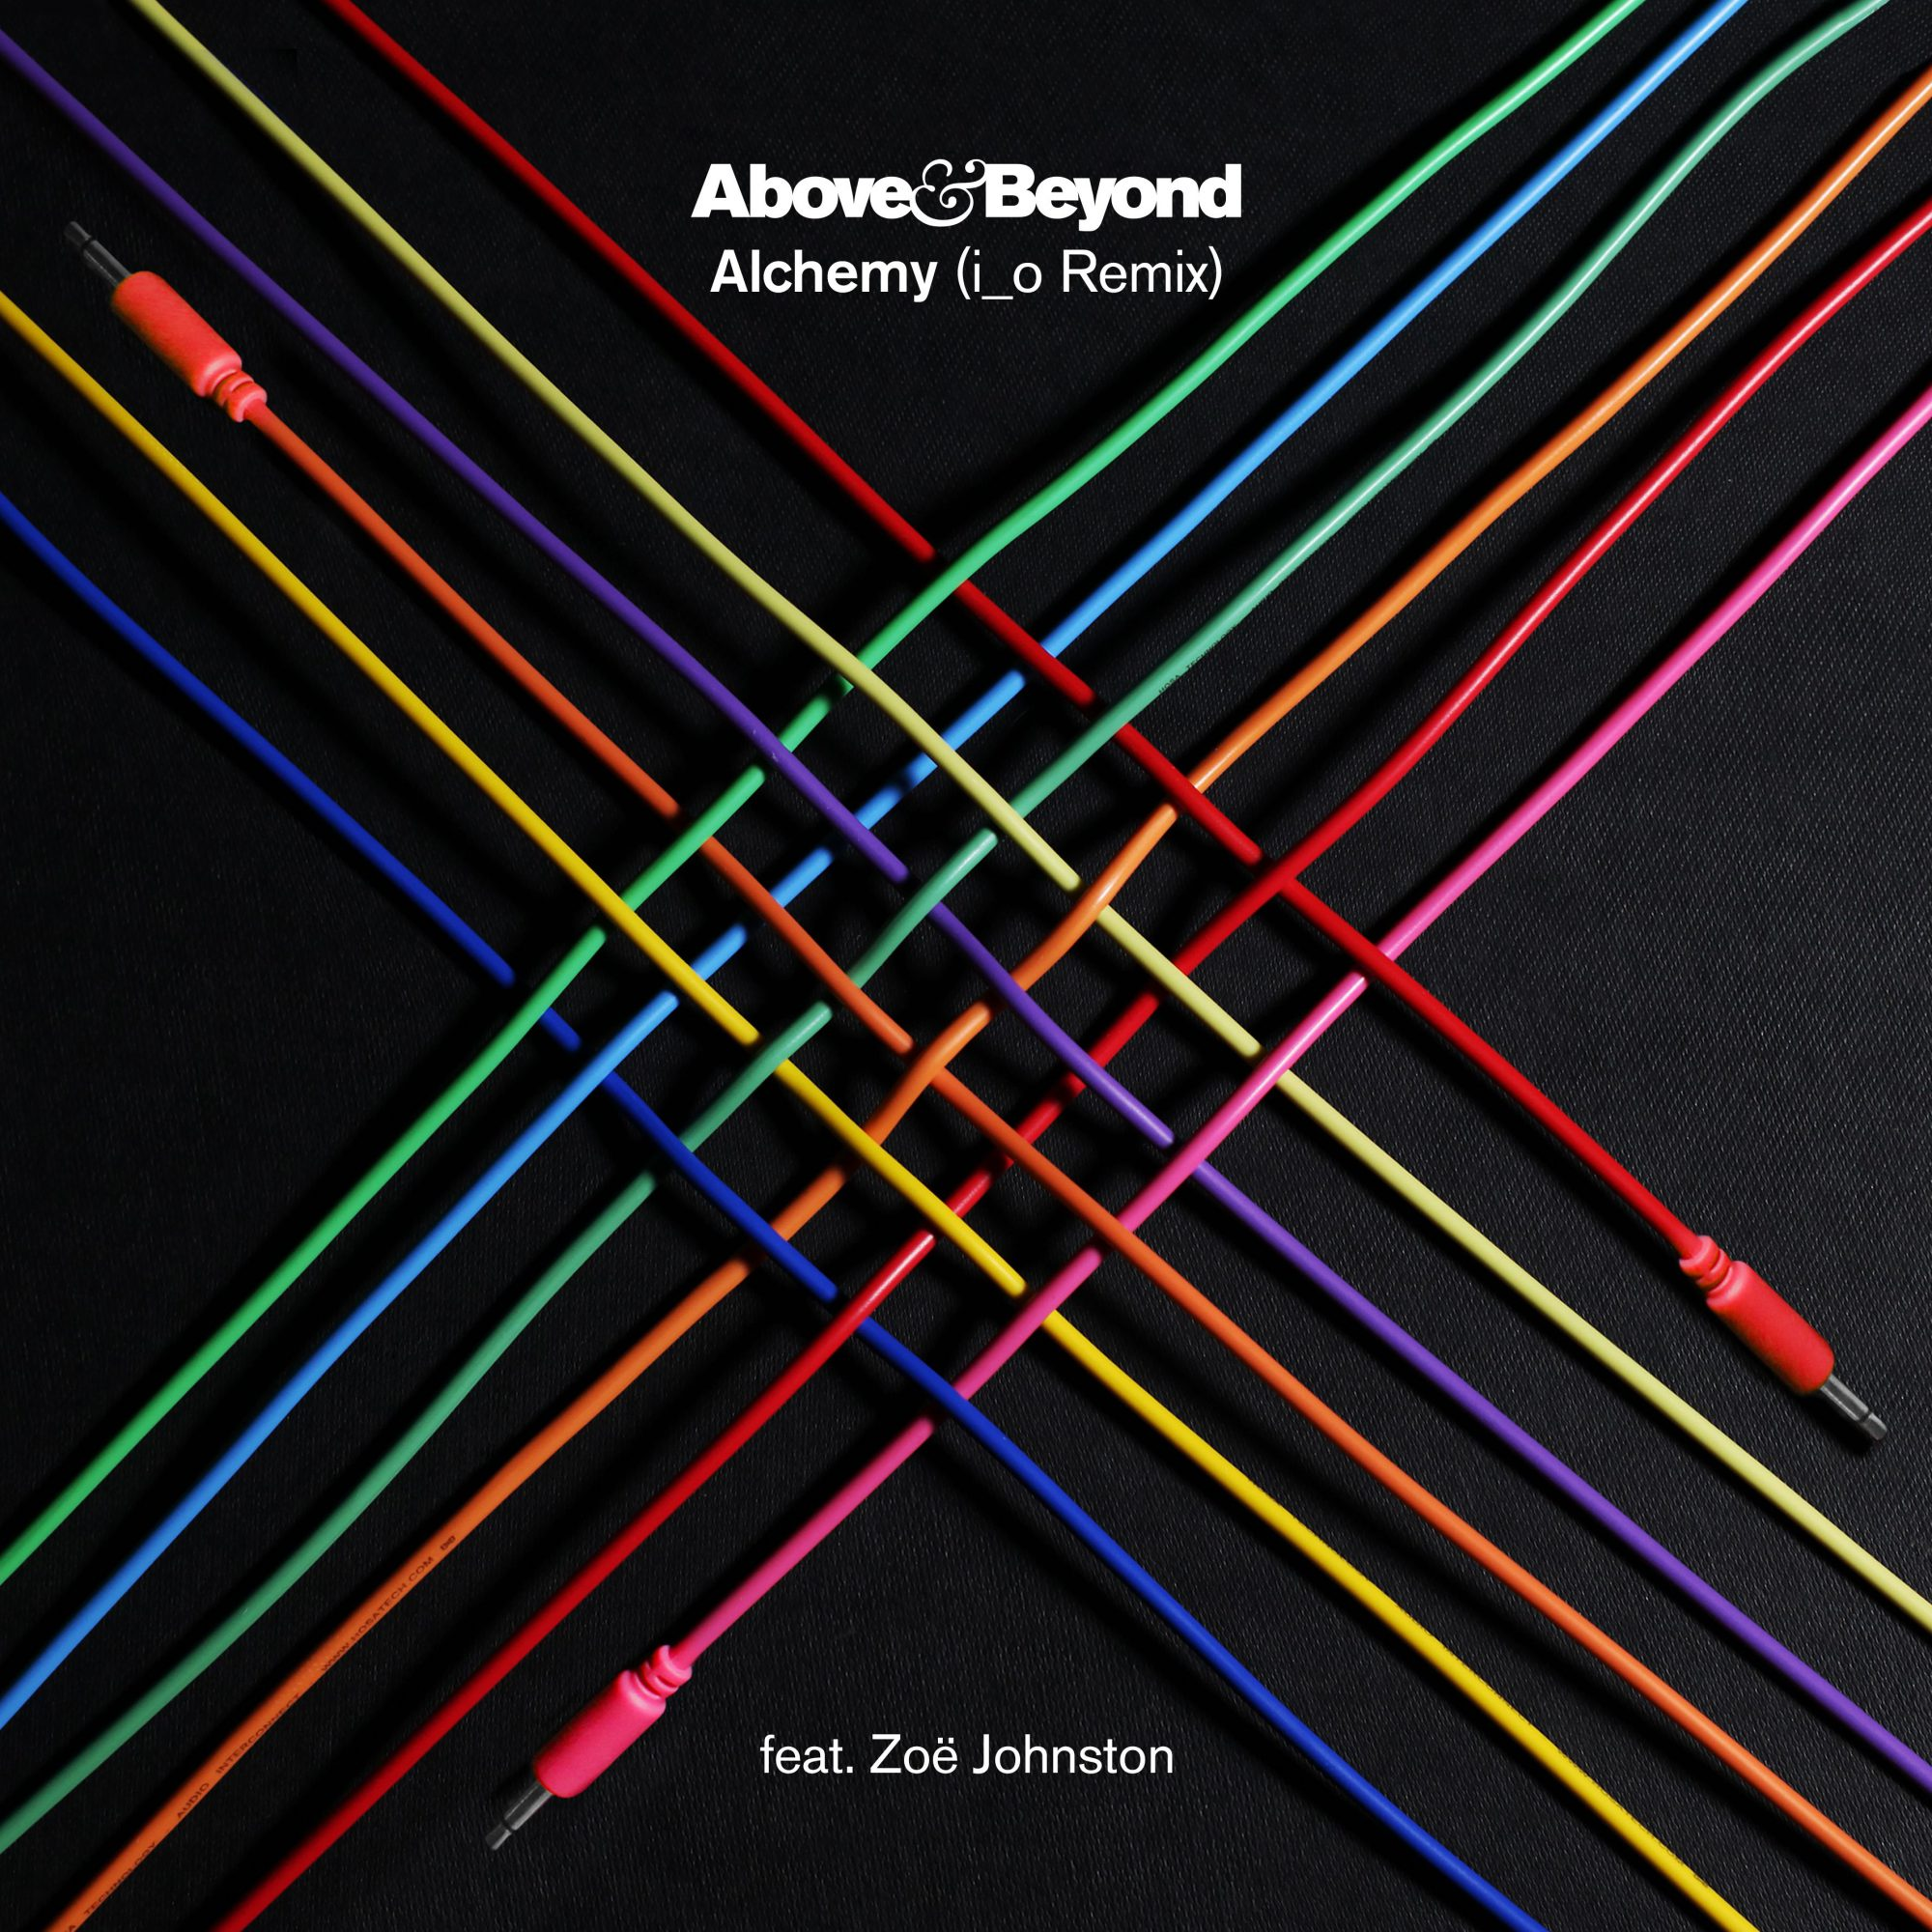 Above & Beyond Alchemy i_o Remix